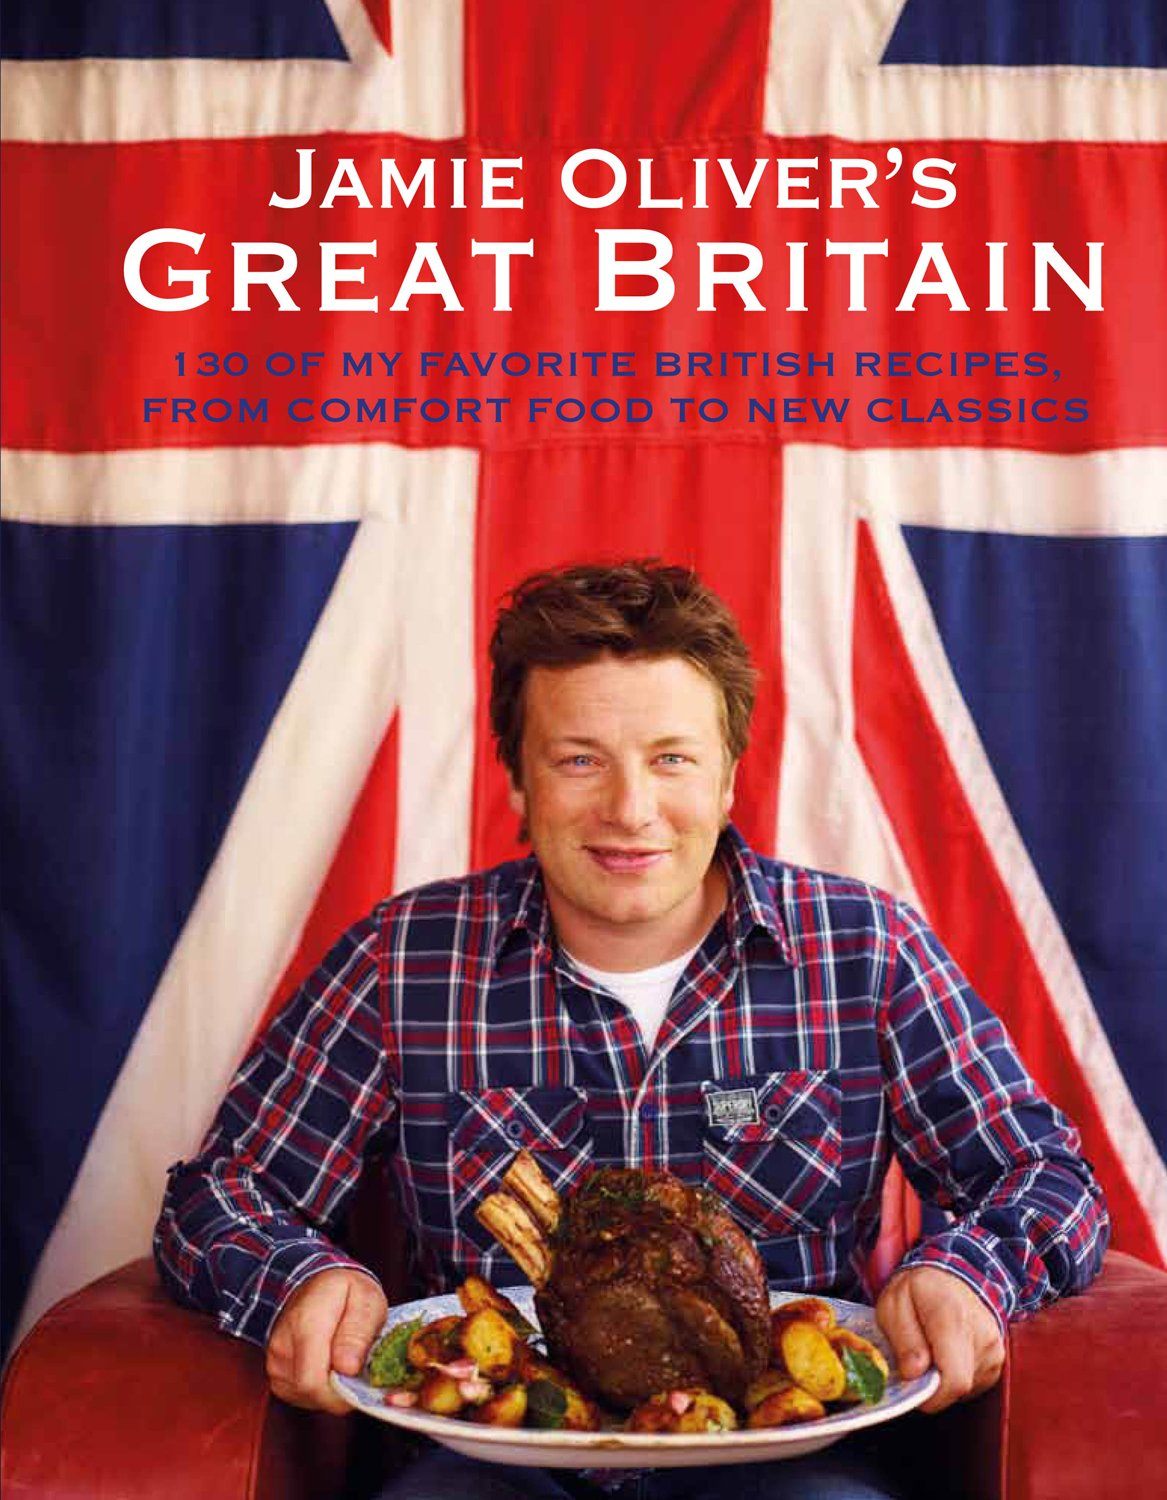 Jamie olivers great britain jamie oliver 9781401324780 amazon jamie olivers great britain jamie oliver 9781401324780 amazon books forumfinder Image collections